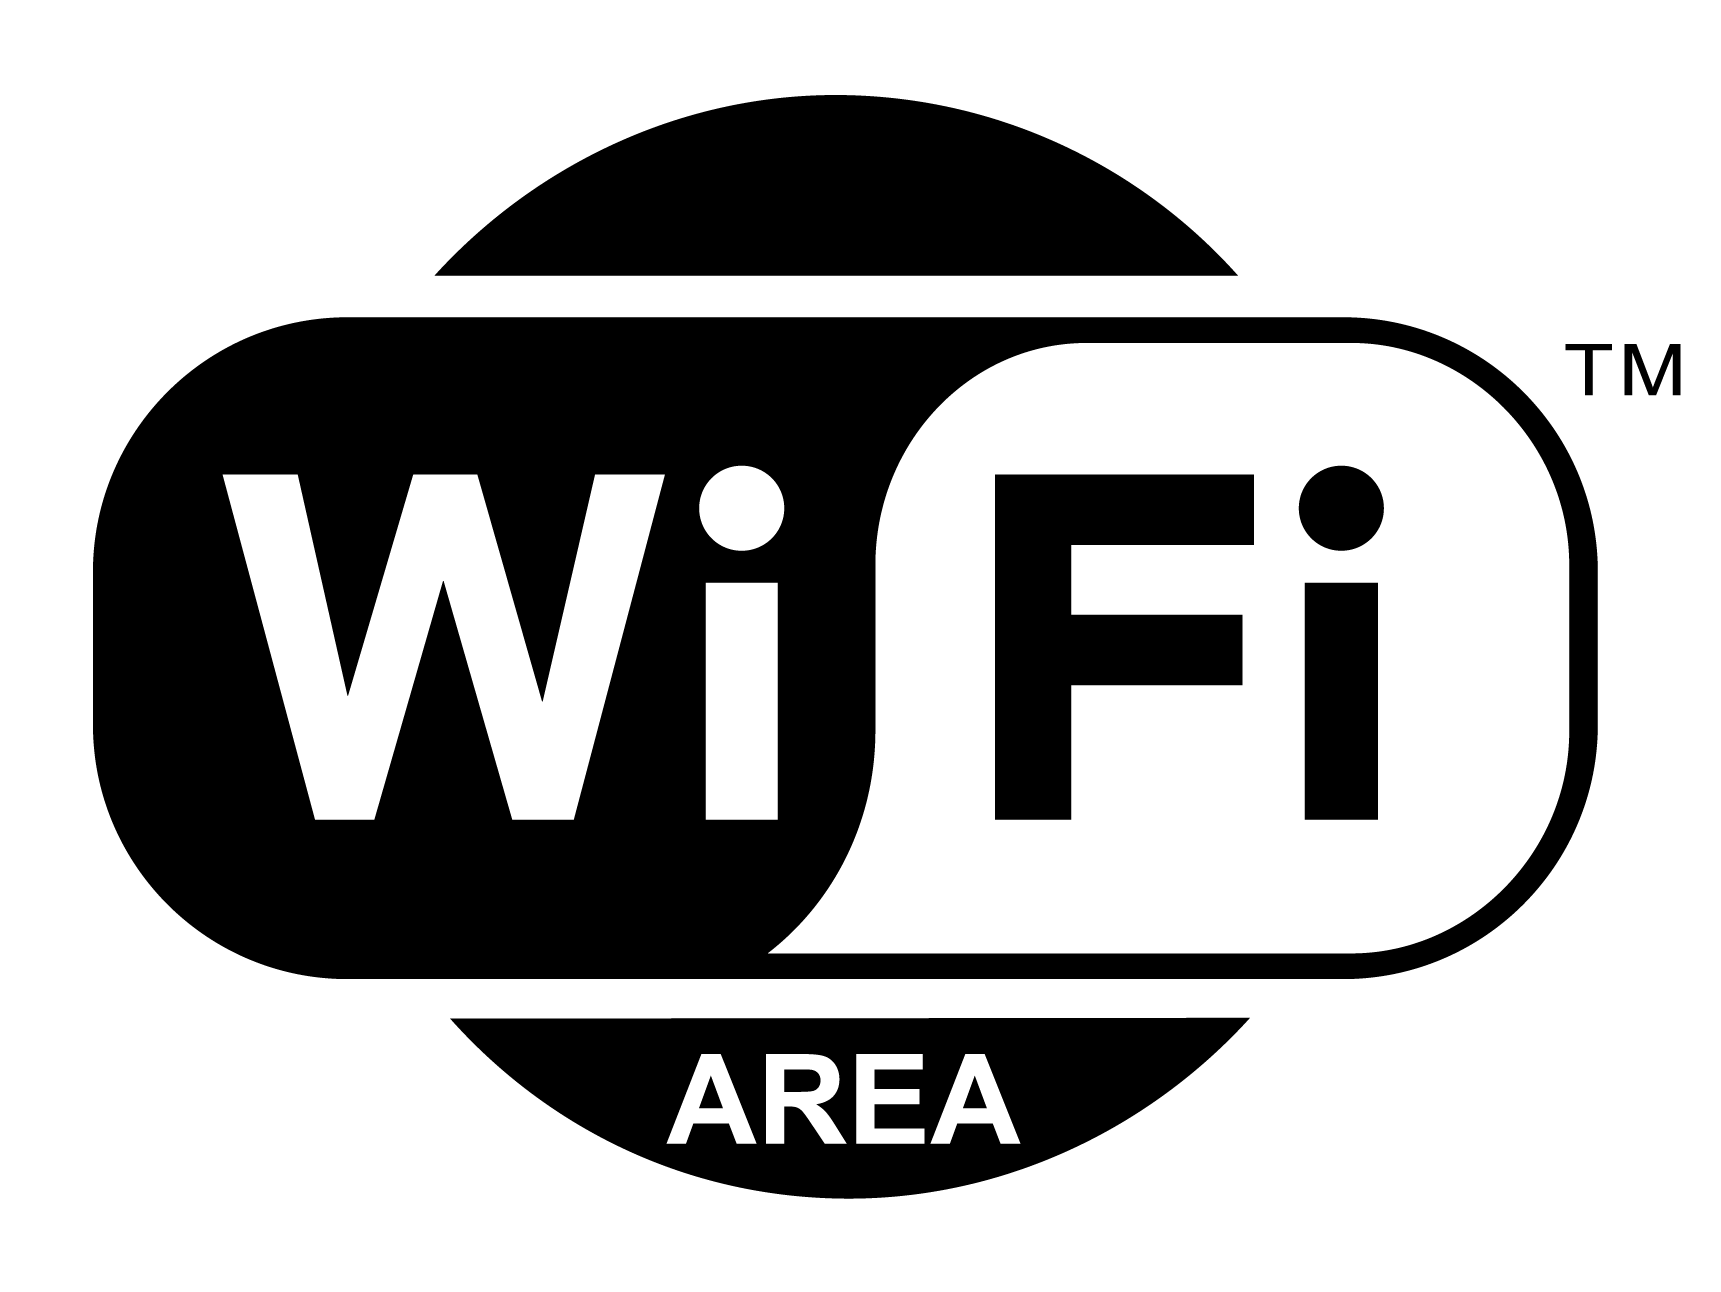 Internet / Wireless LAN / Wi-Fi